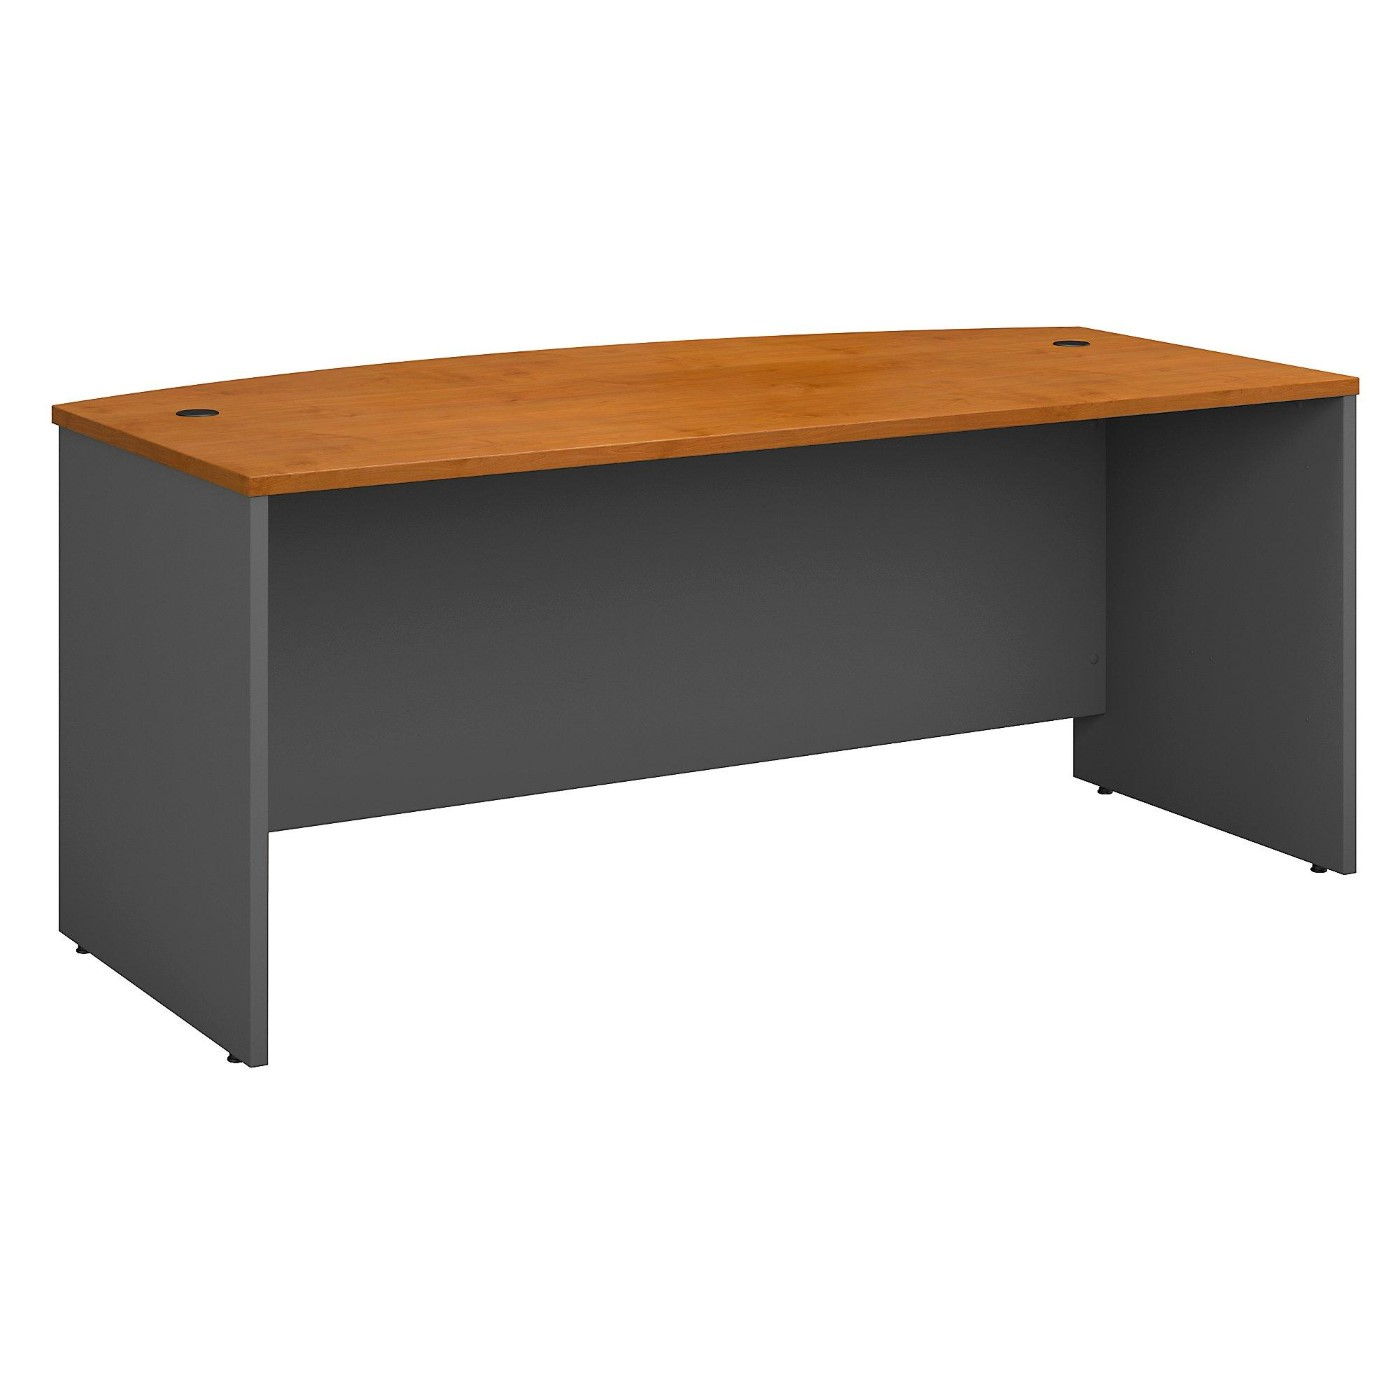 <font color=#c60><b>BUSH BUSINESS FURNITURE SERIES C 72W X 36D BOW FRONT DESK. FREE SHIPPING</font></b>